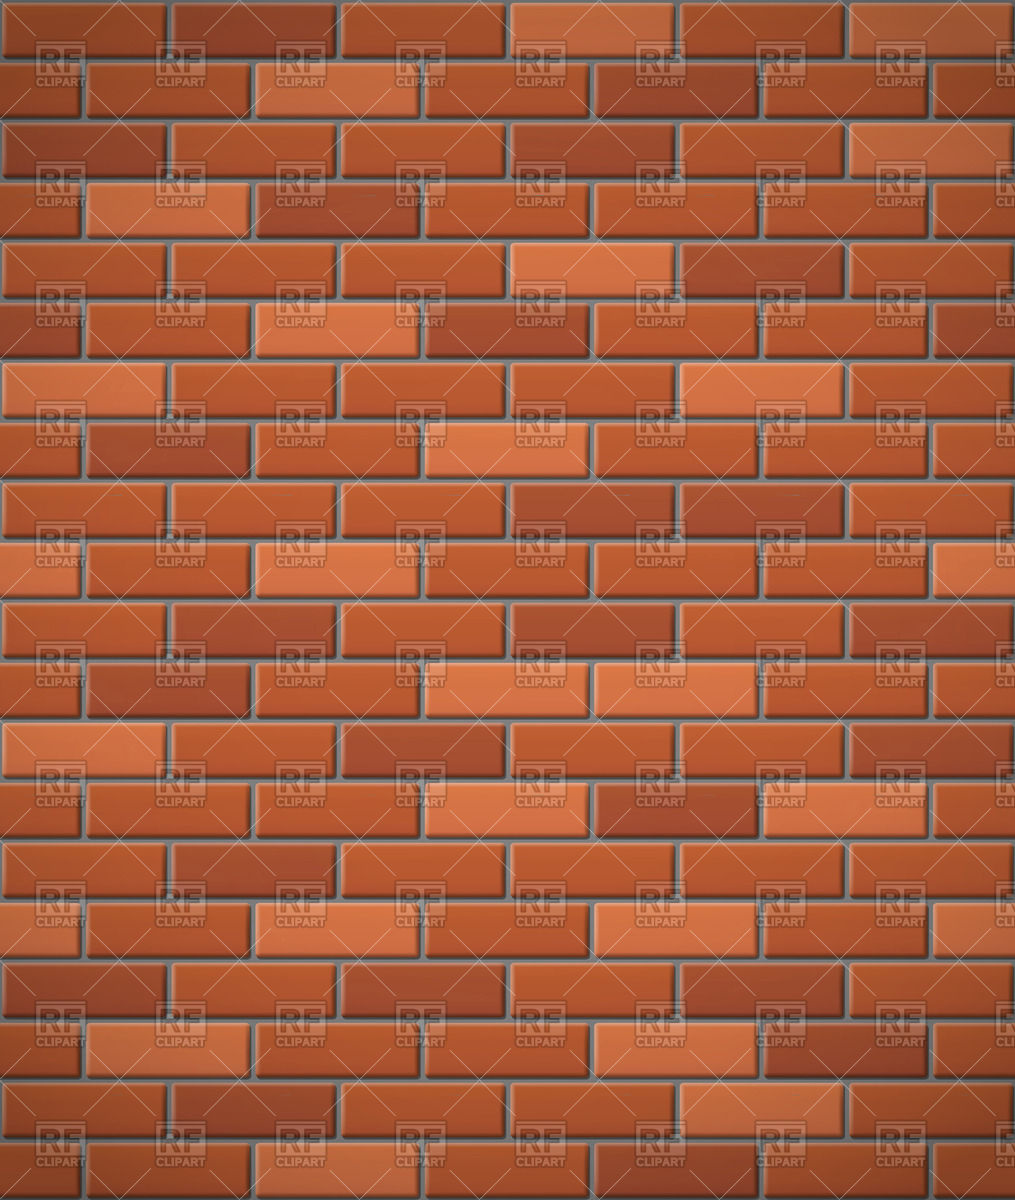 Wall of red brick seamless background Vector Image #66377.